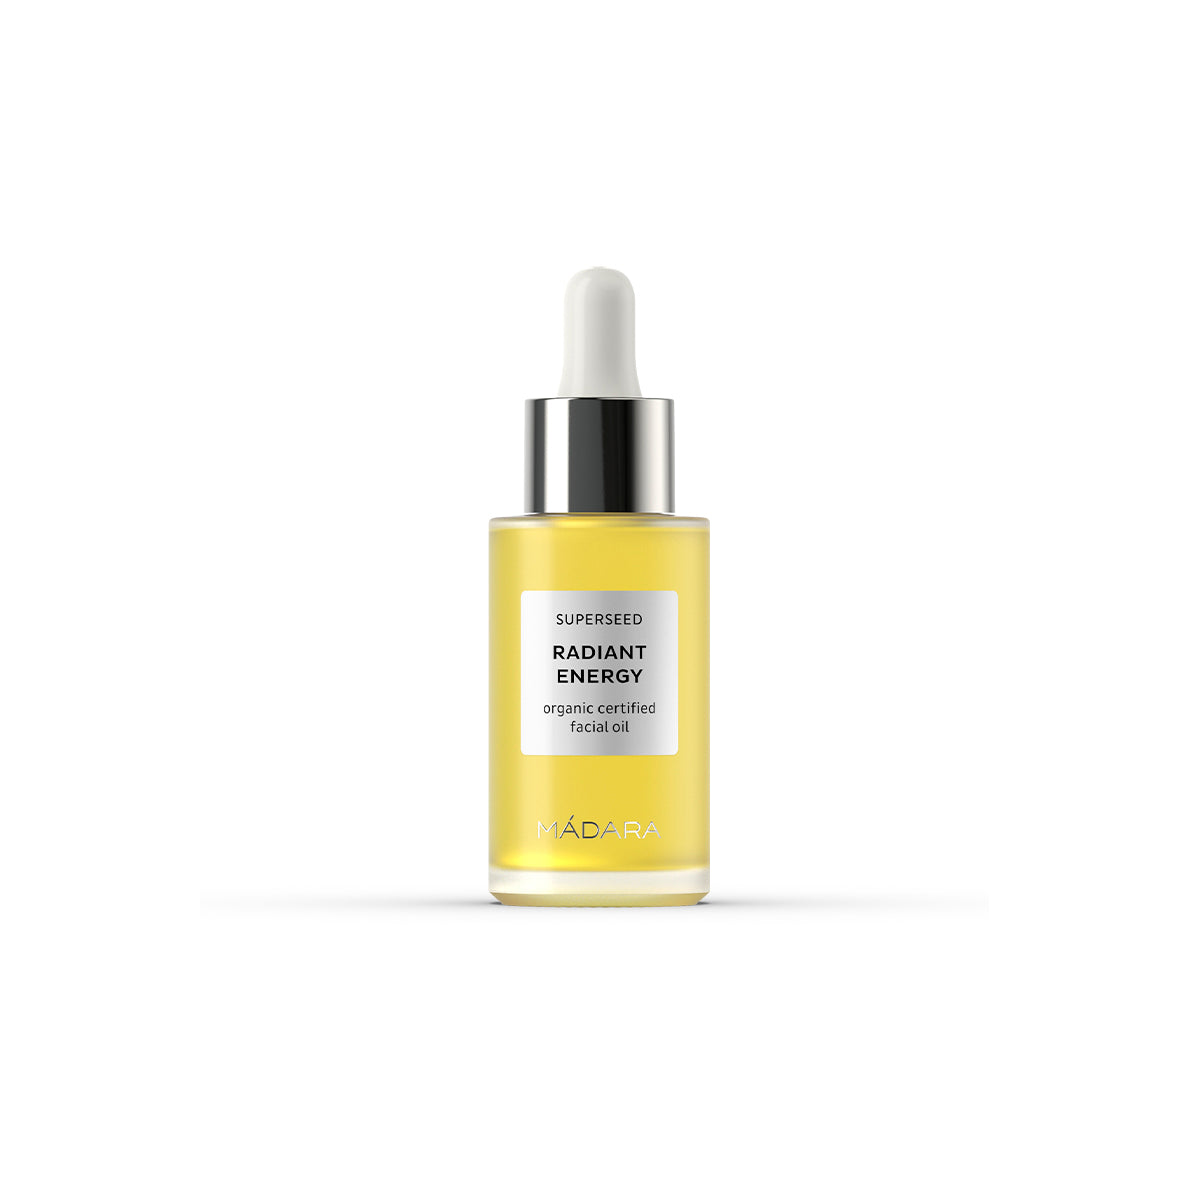 Superseed Radiant Energy Beauty Oil